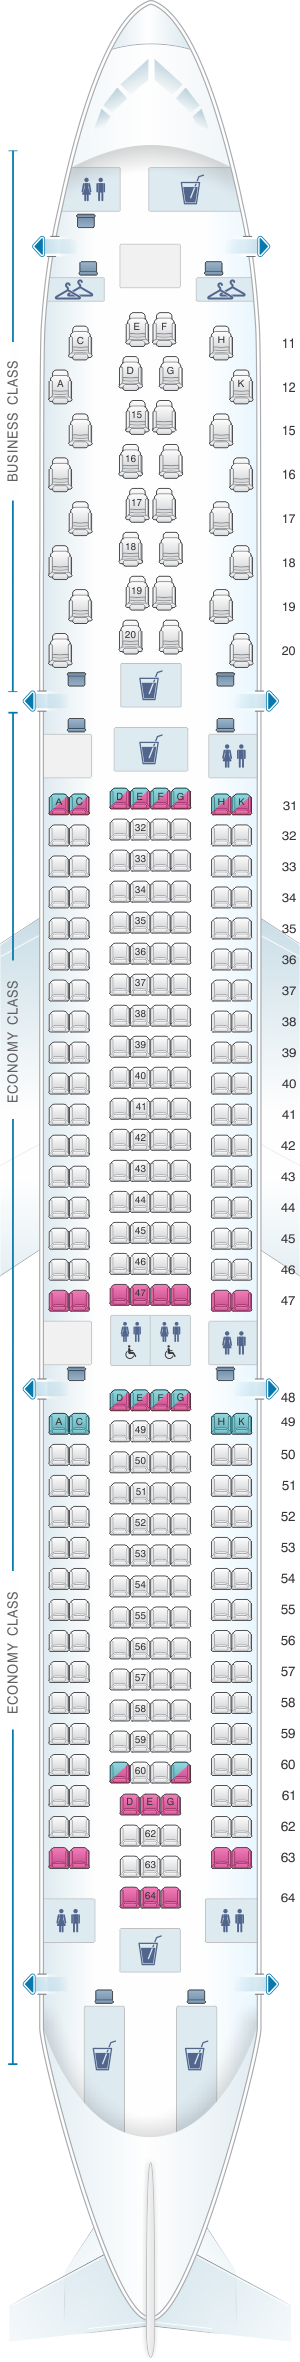 Seat map for Hainan Airlines Airbus A330 300